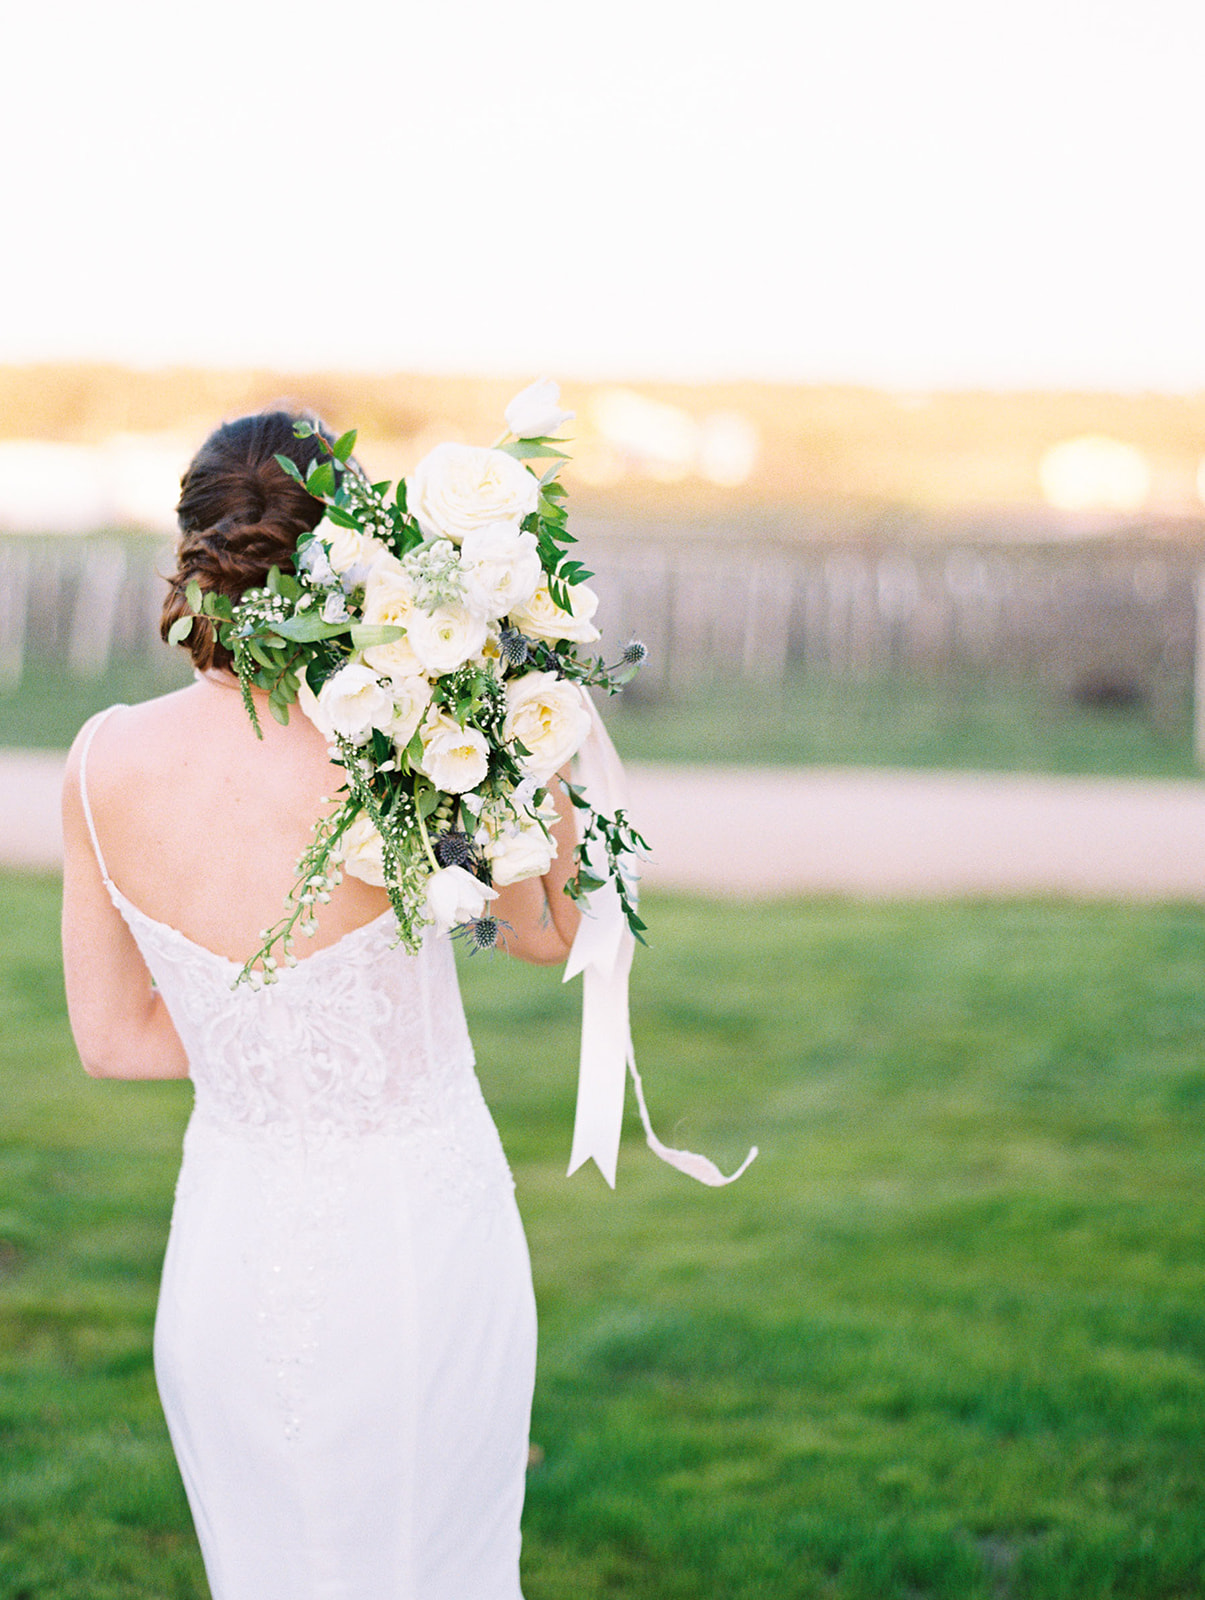 White wedding bouquet: Elopement vineyard wedding at Umbra Winery by Alexa Kay Events. See more wedding ideas at alexakayevents.com!